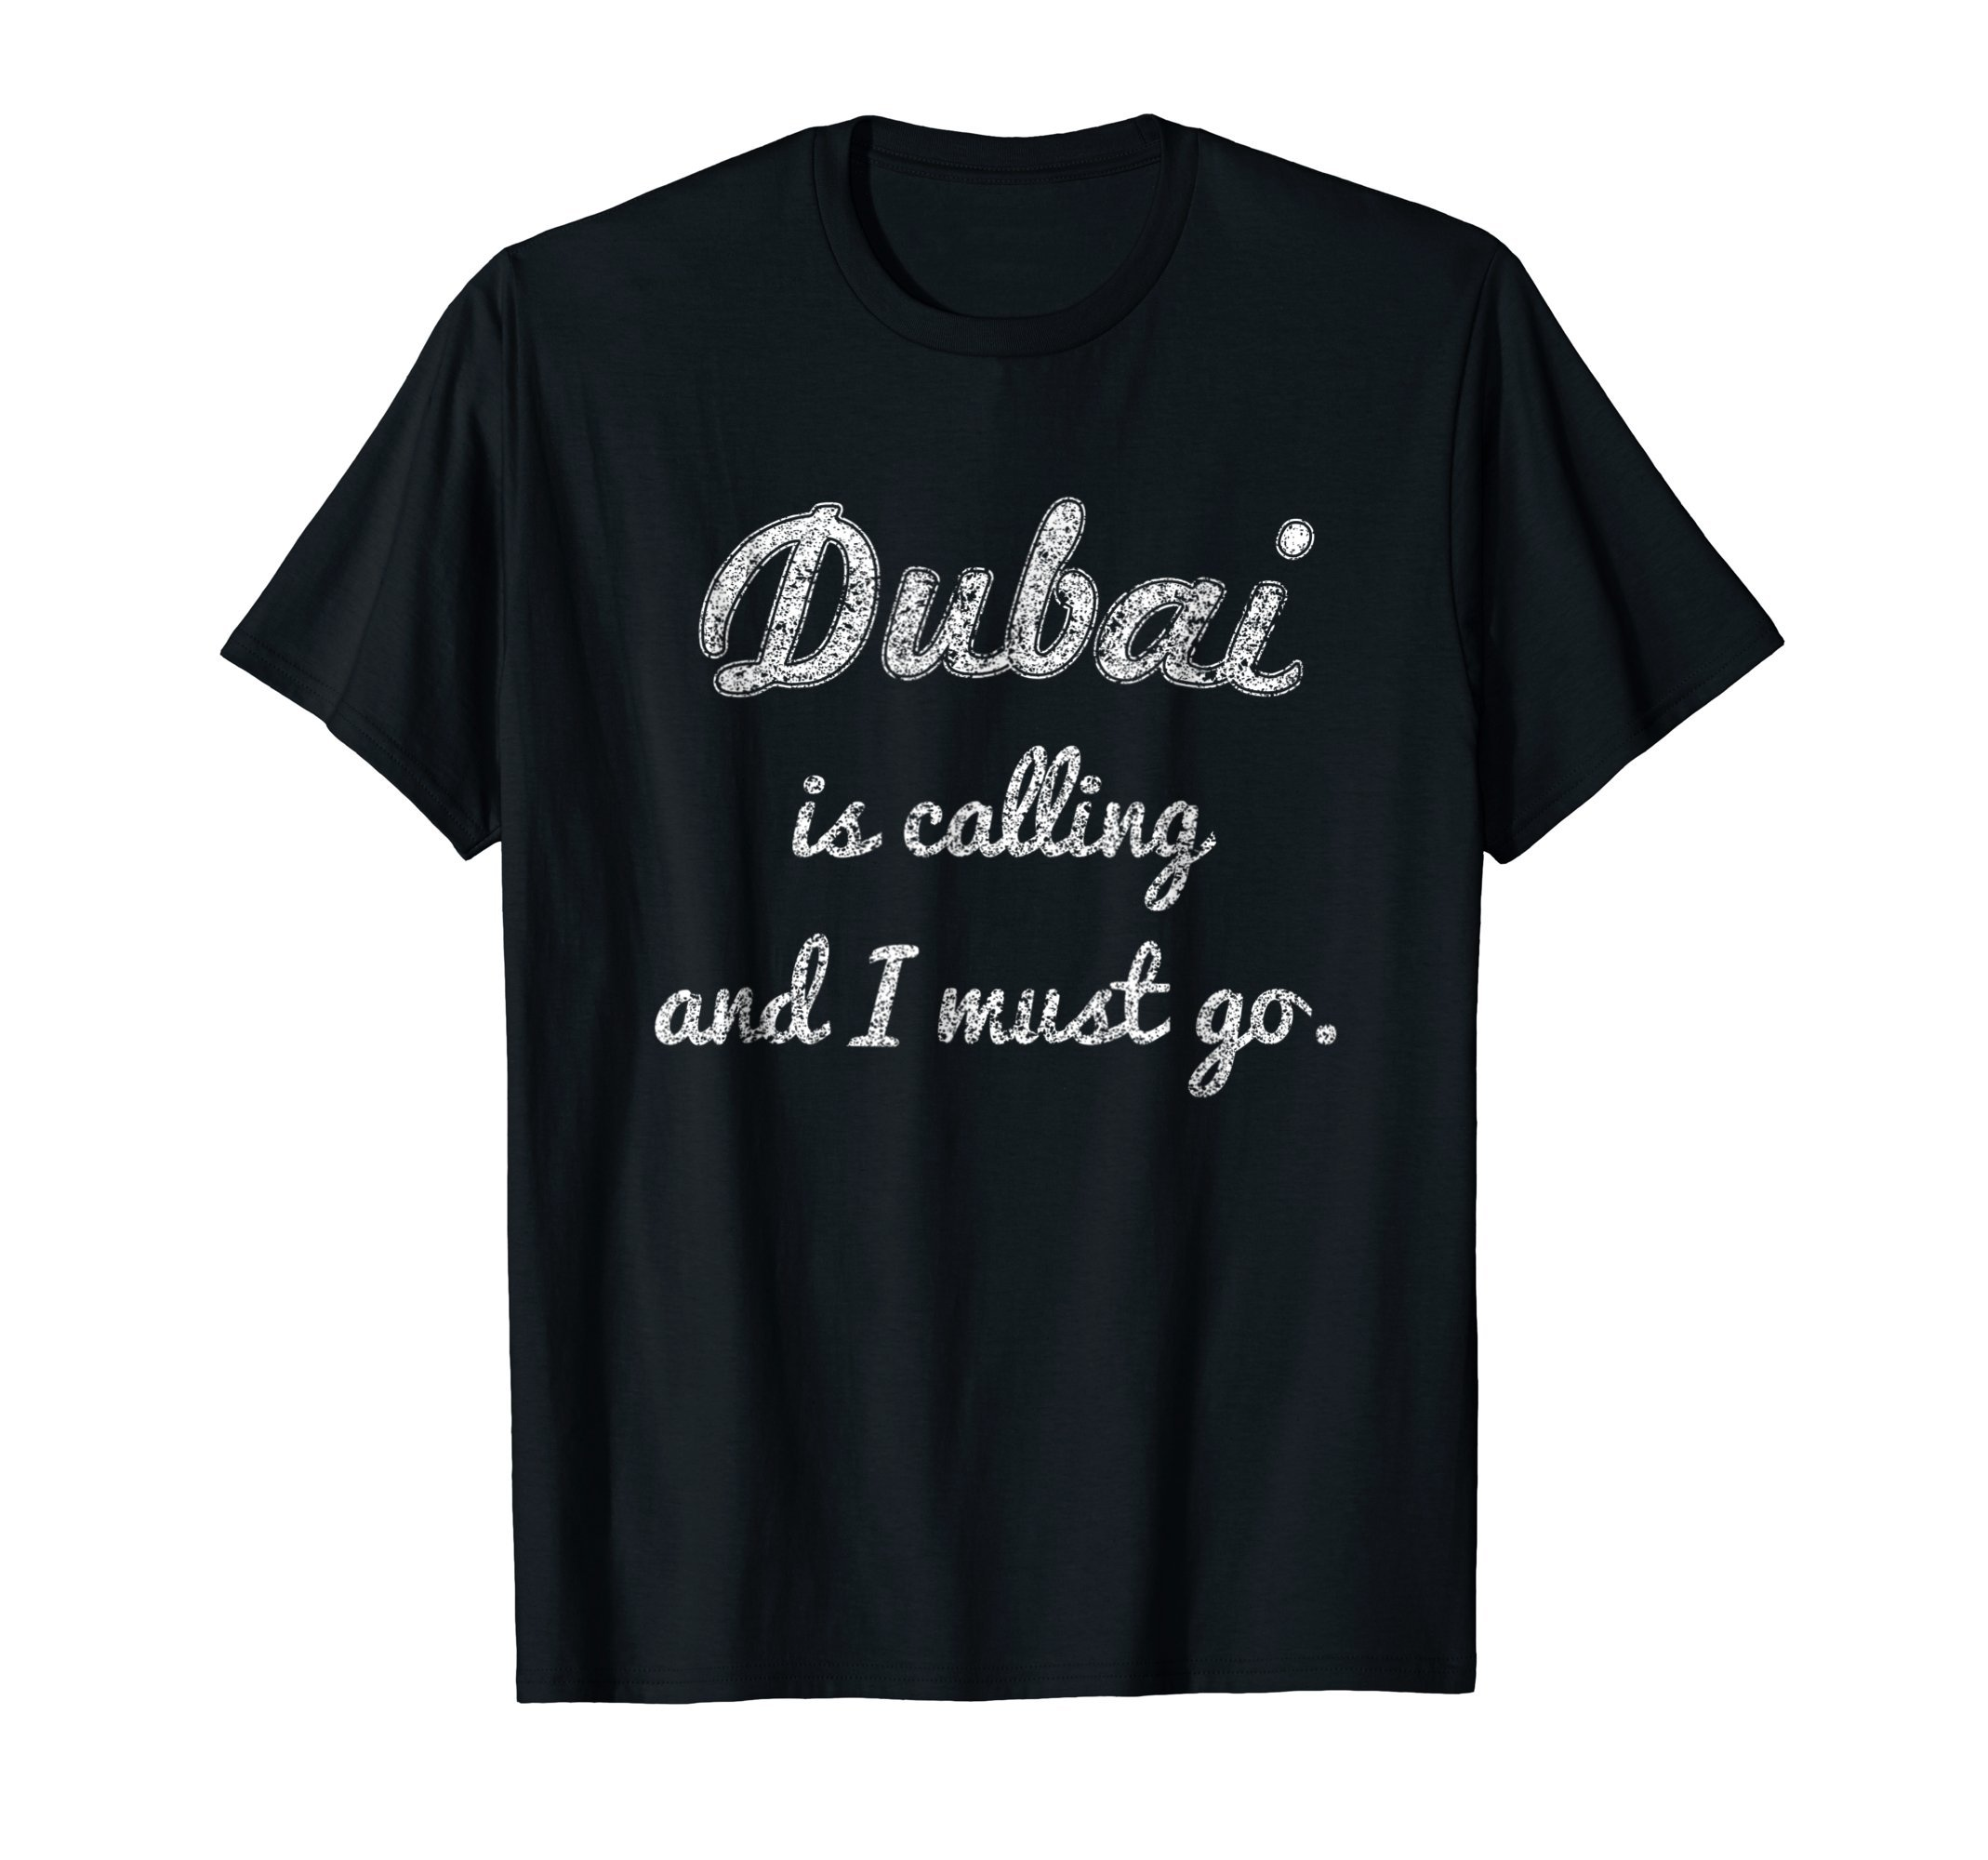 Dubai is calling and I must go funny gift travel T-Shirt by Funny travel and vacation shirts (Image #1)